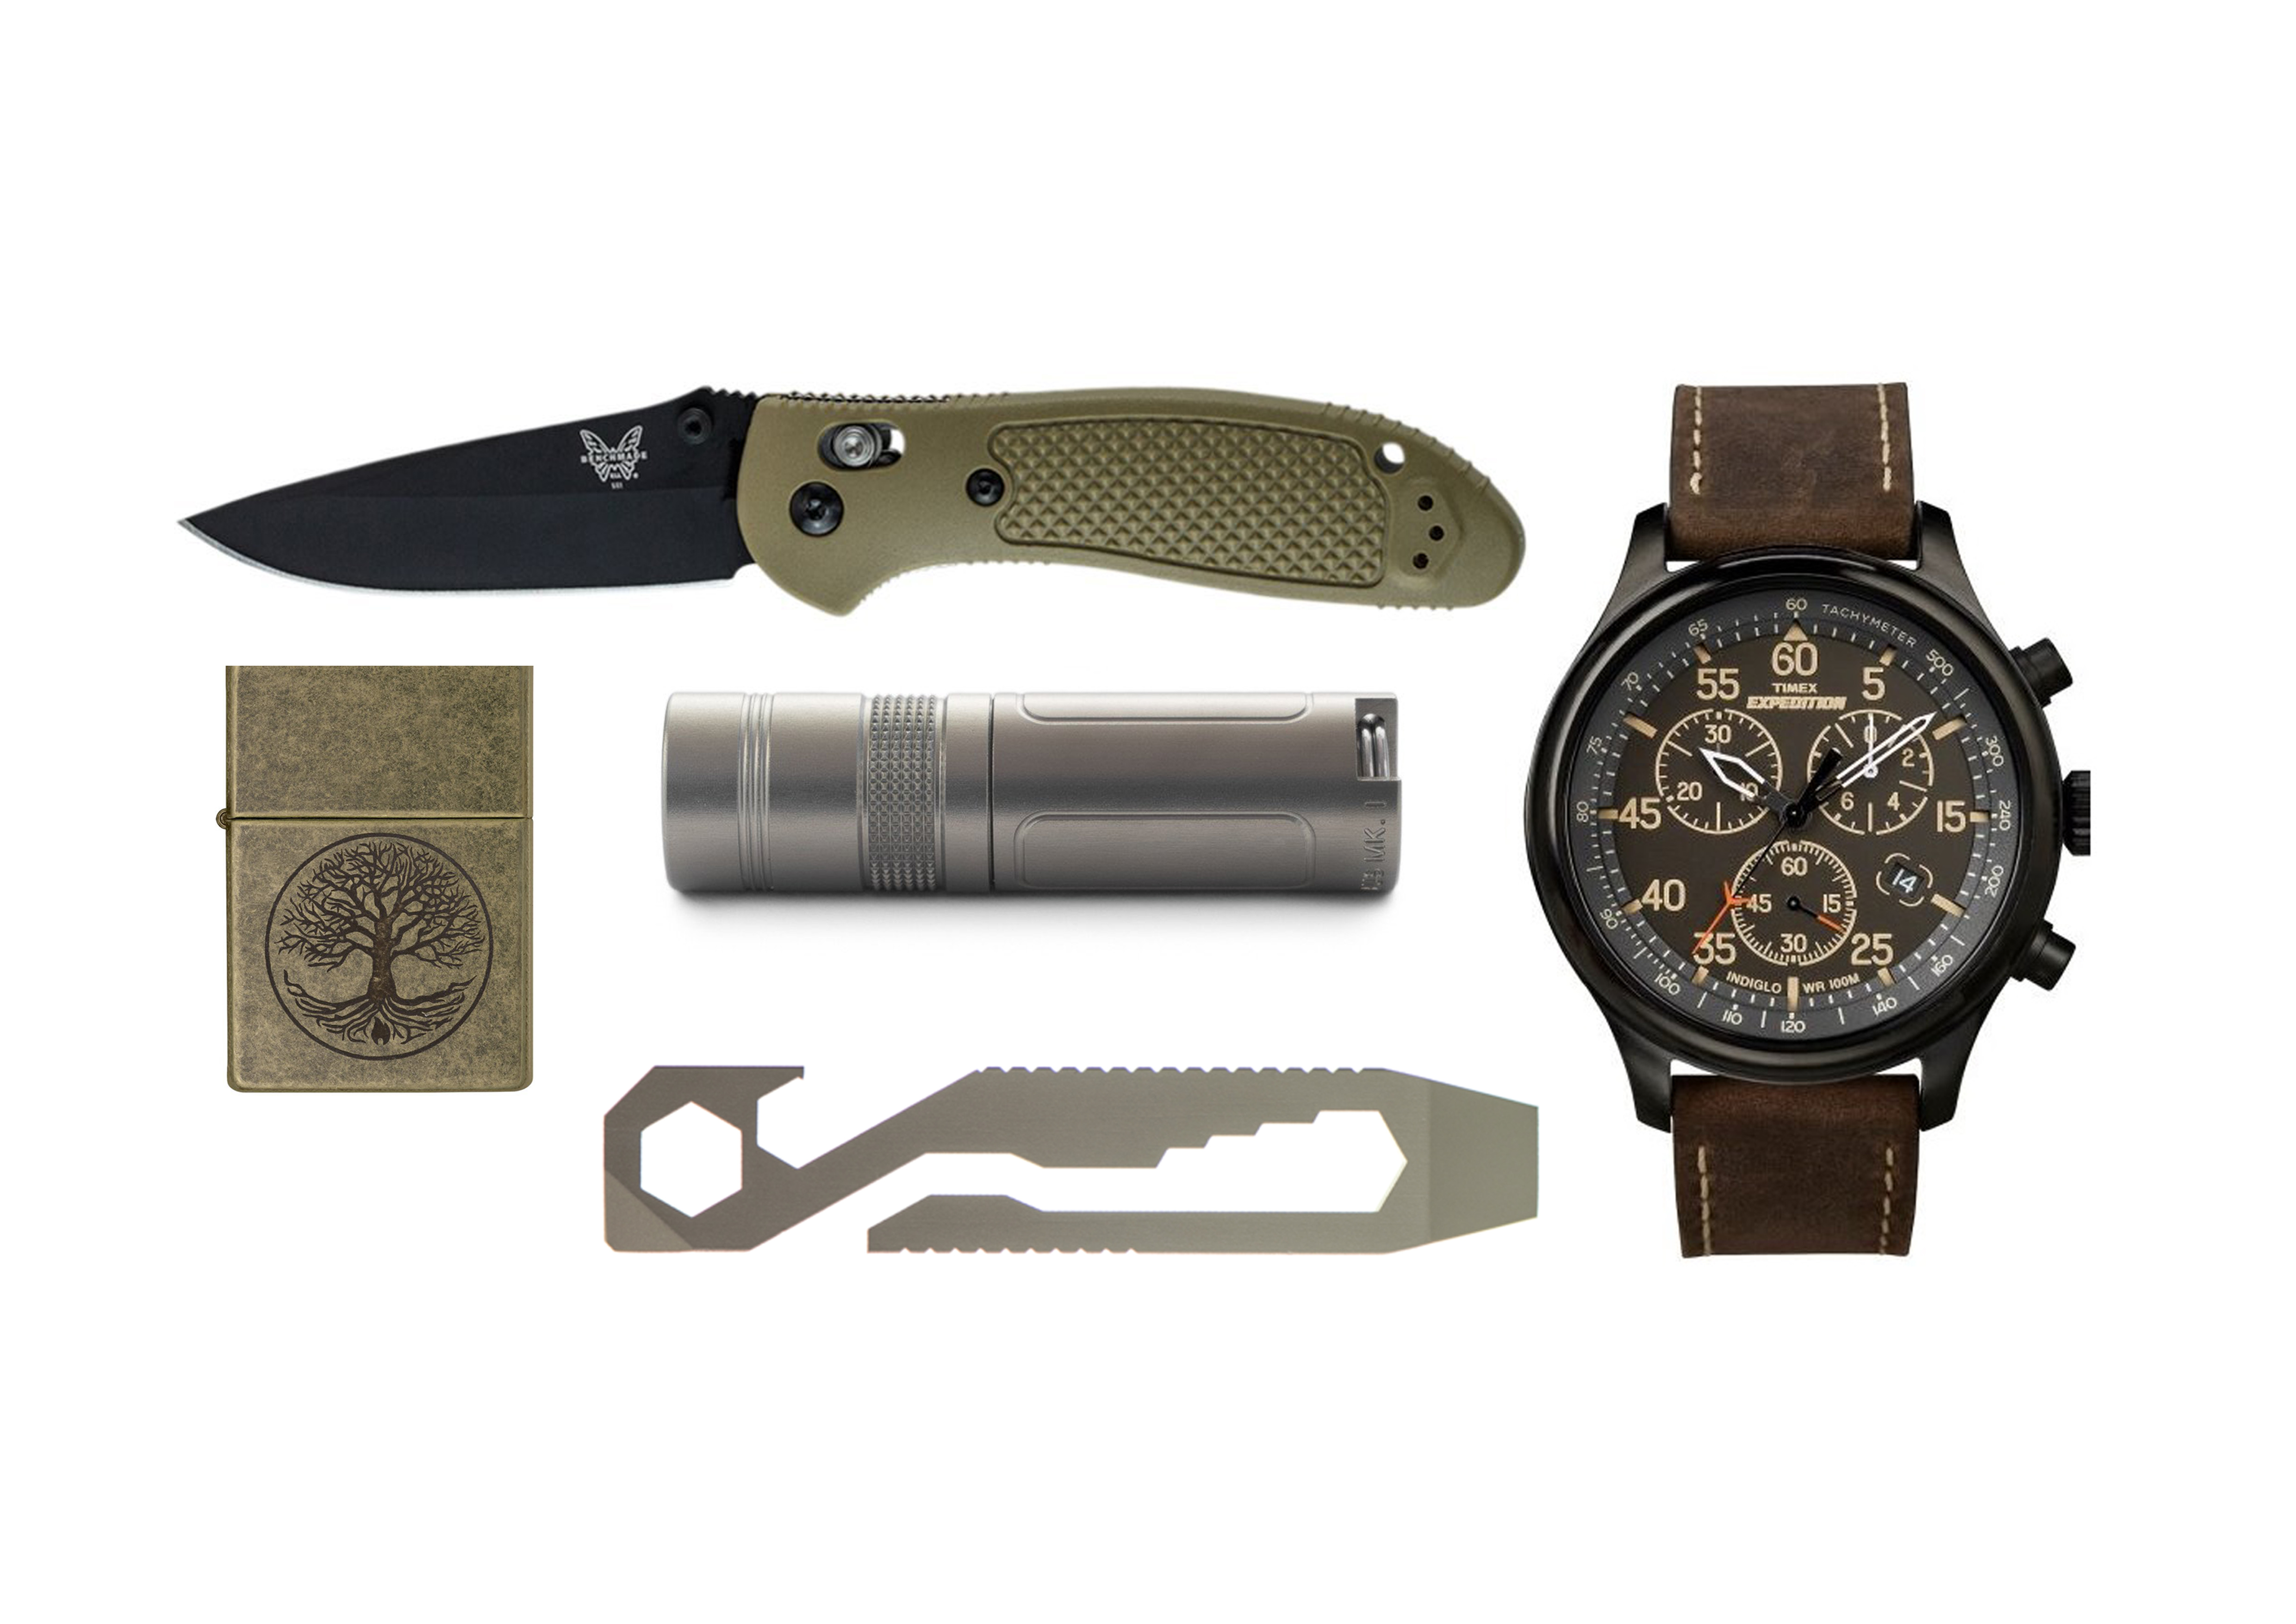 GALLERY FOR EVERY DAY CARRY, EDC, CAMPING AND HIKING GEAR